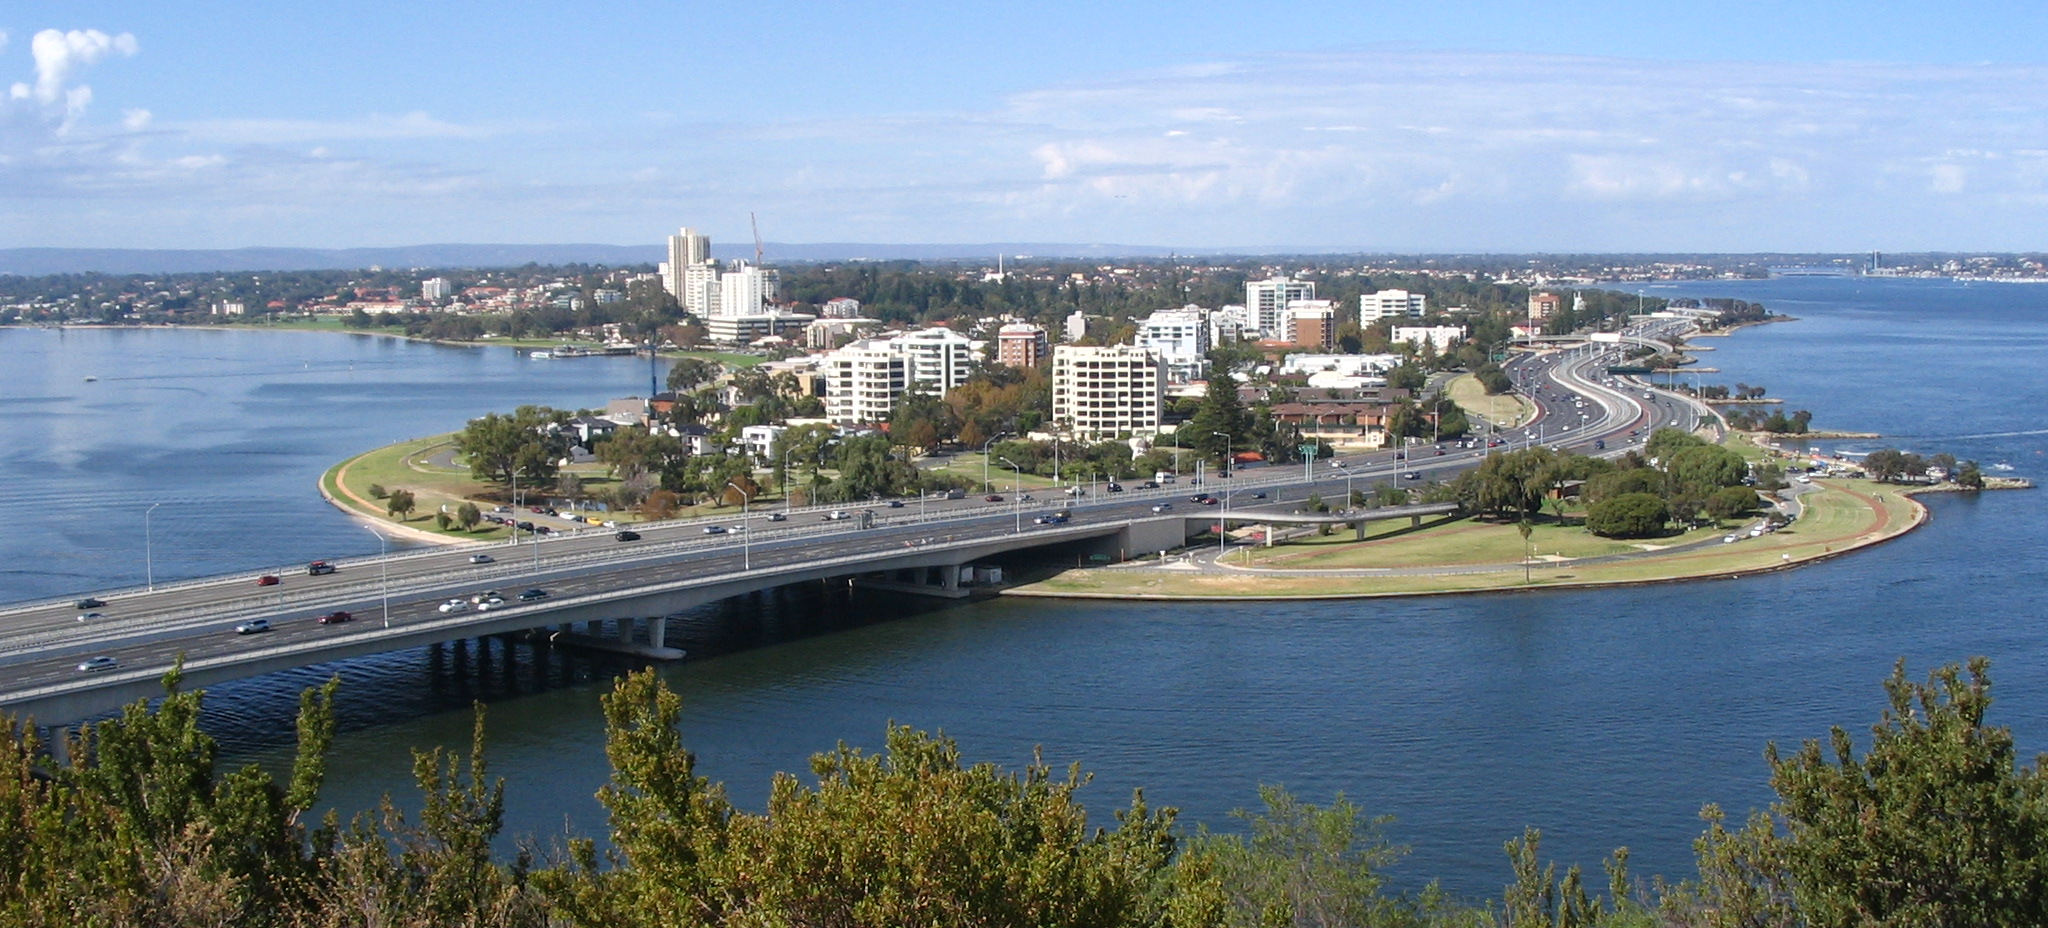 Perth Australia  city photos gallery : South Perth from Kings Park Wikimedia Commons